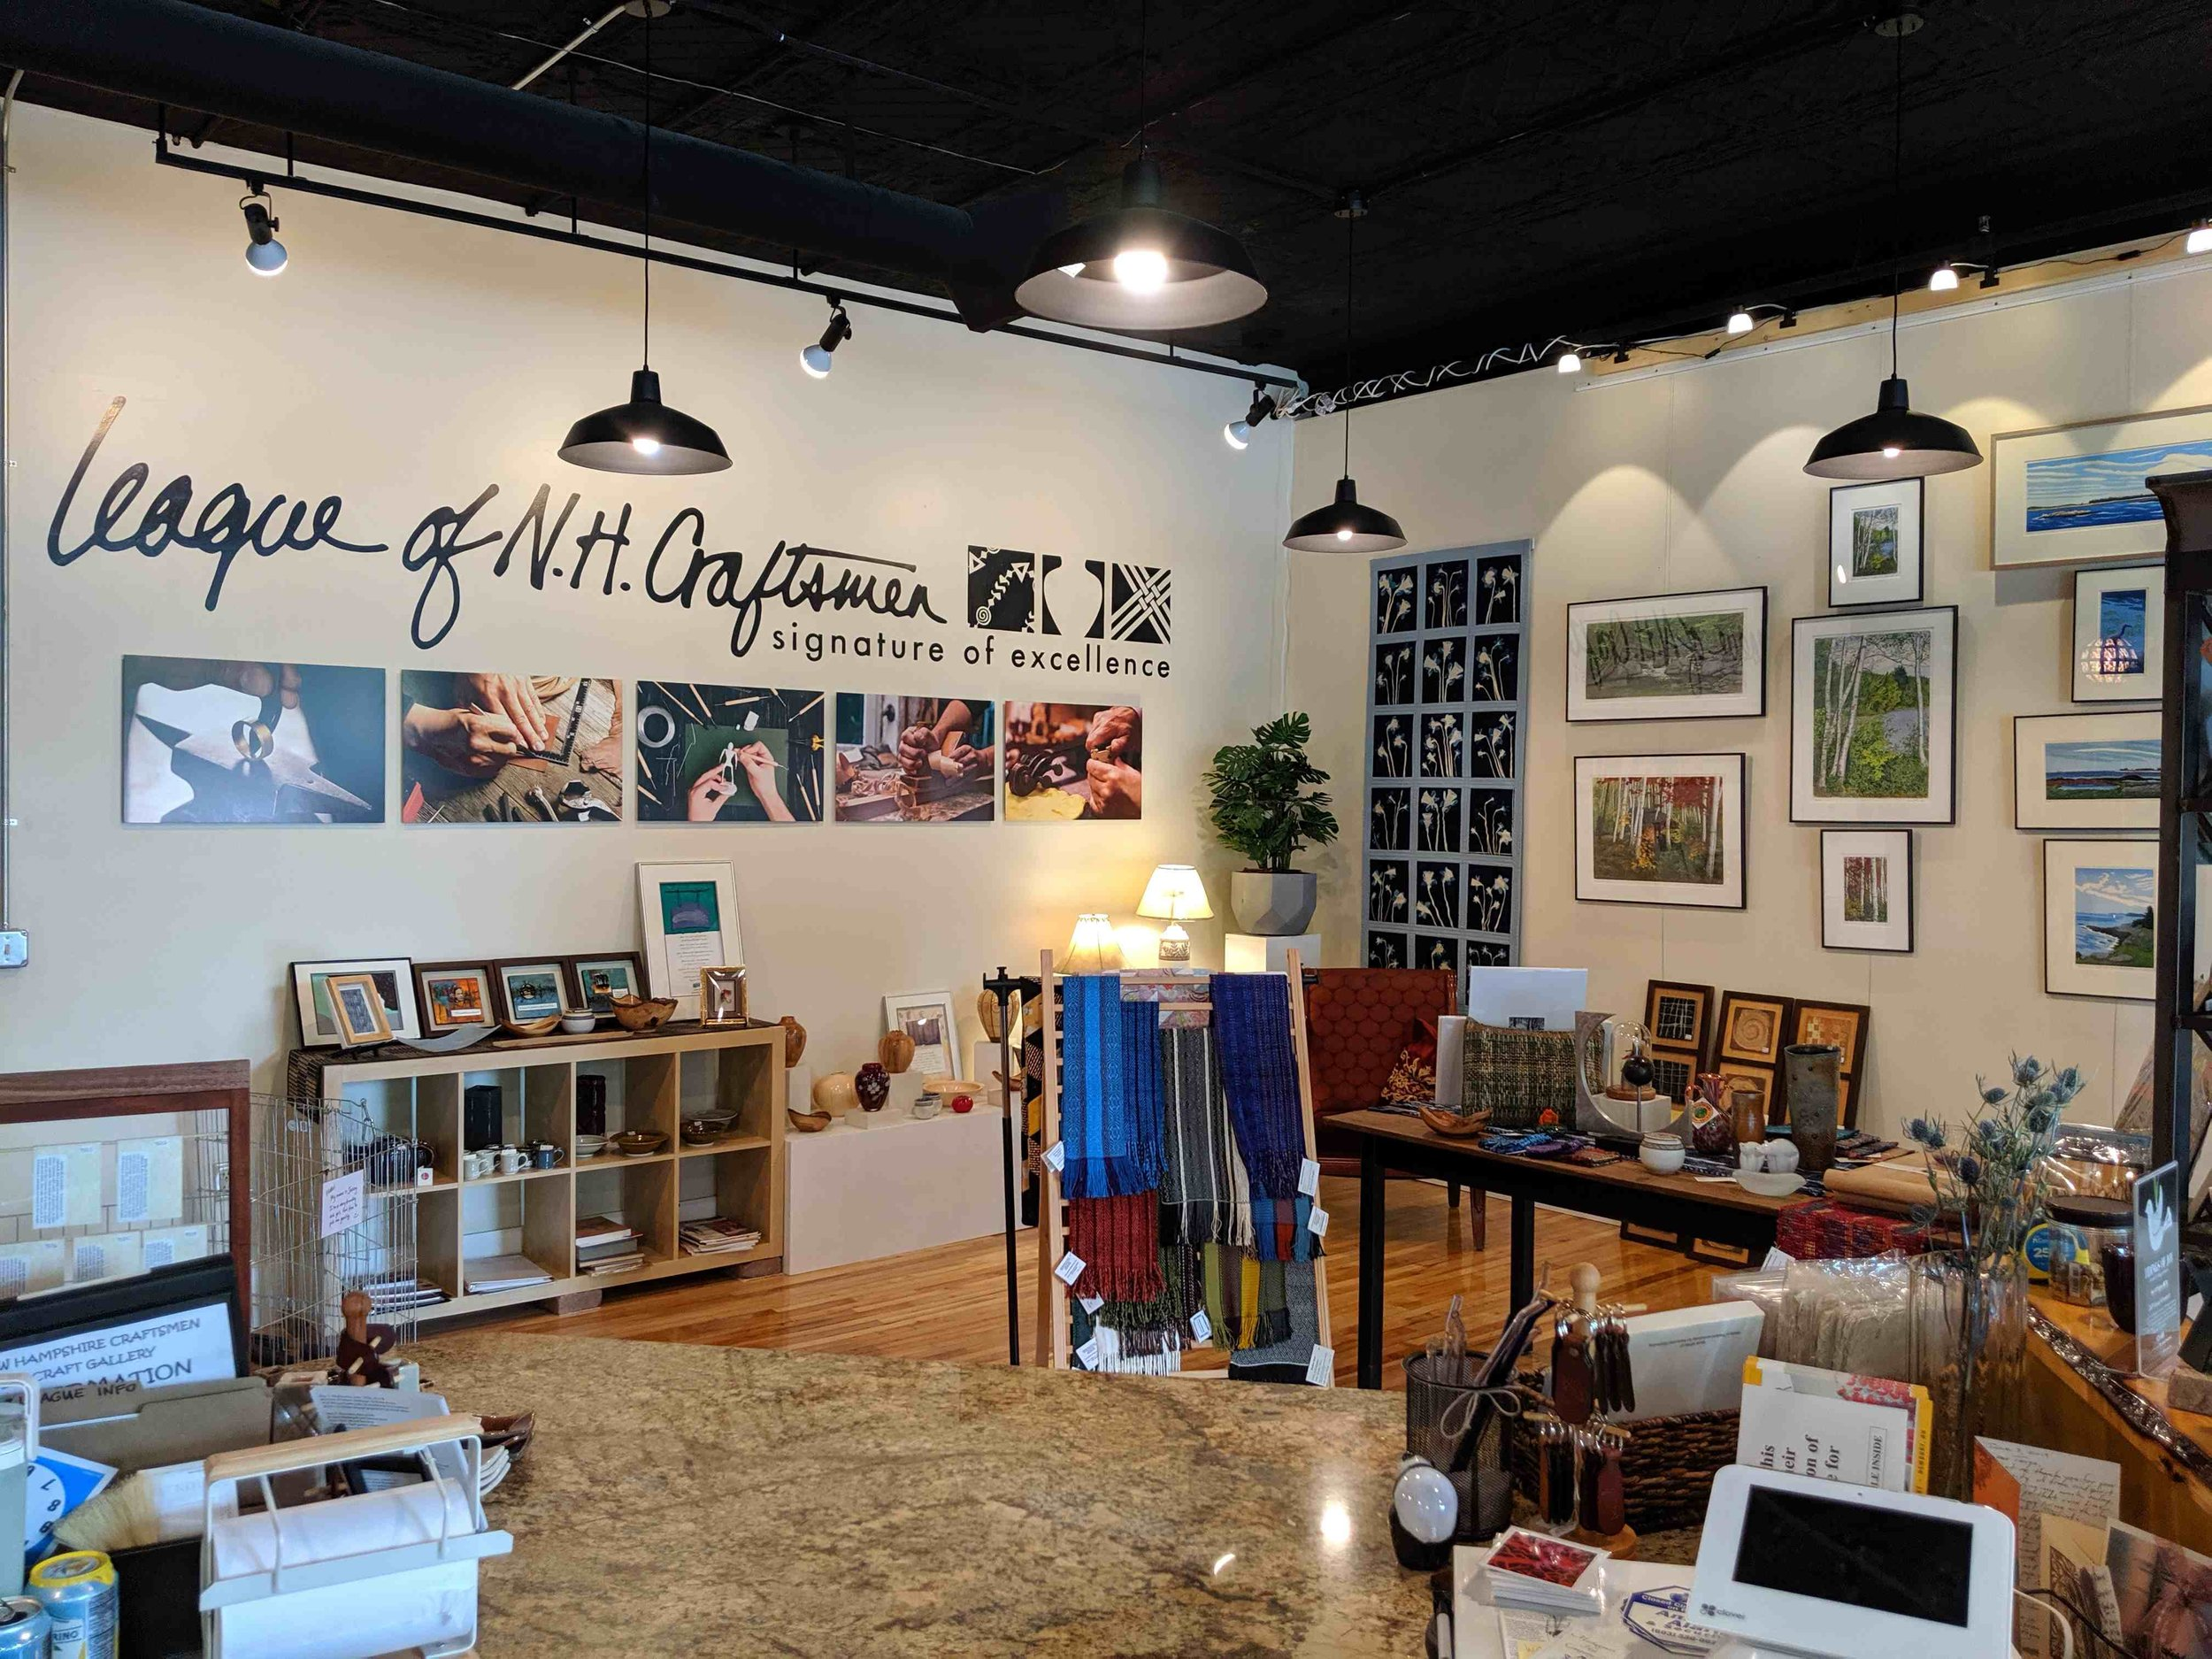 The new League of NH Craftsmen store in Keene, NH